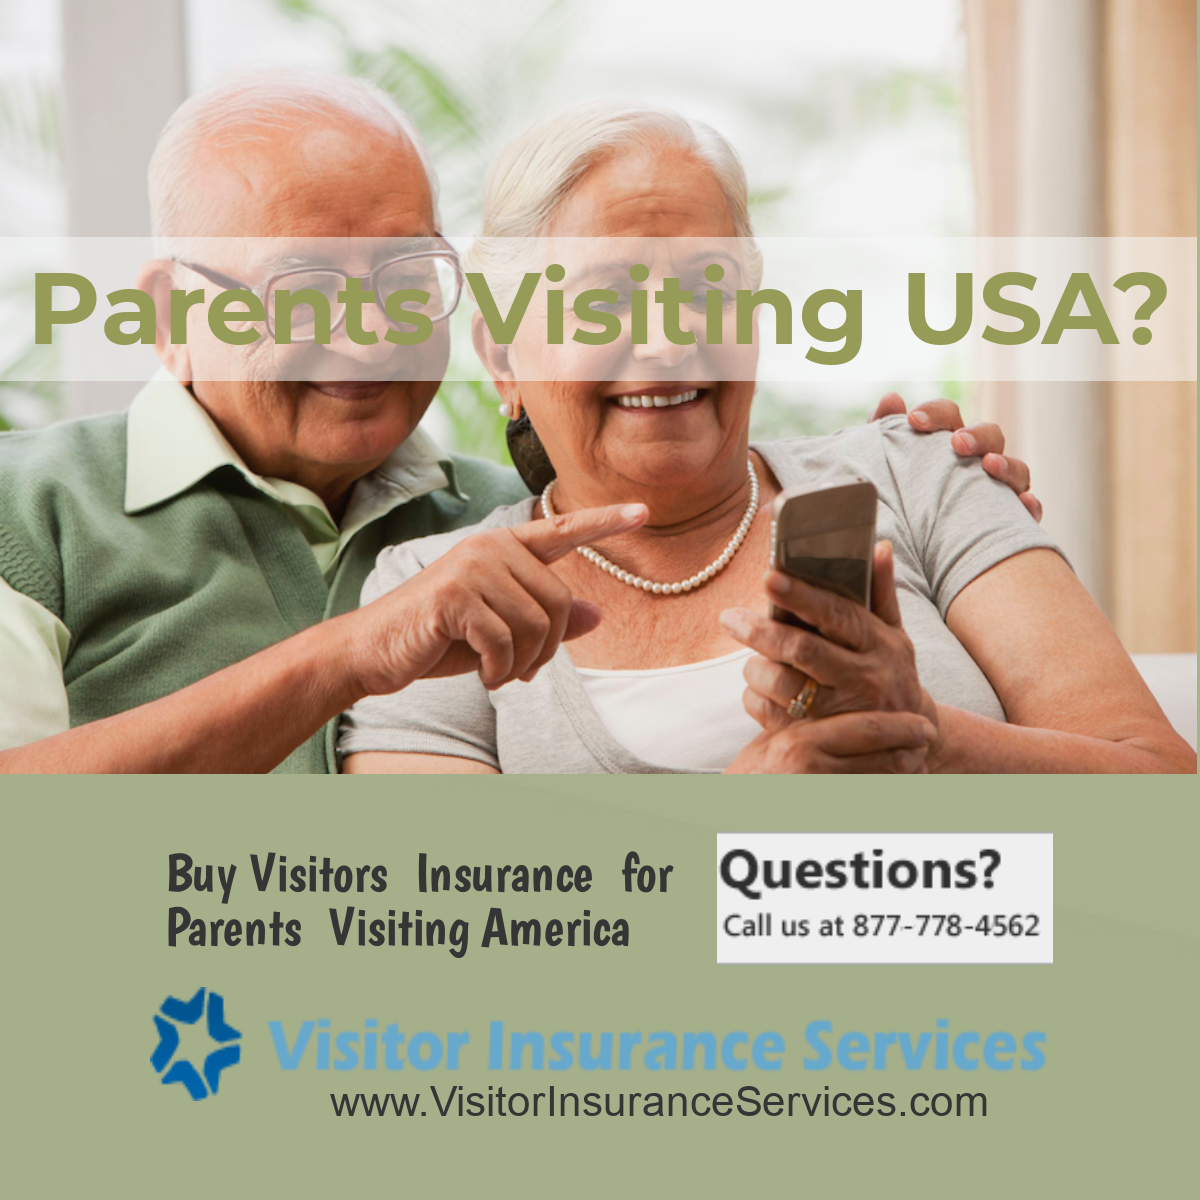 Visitor Insurance for Parents, Insurance for Parents